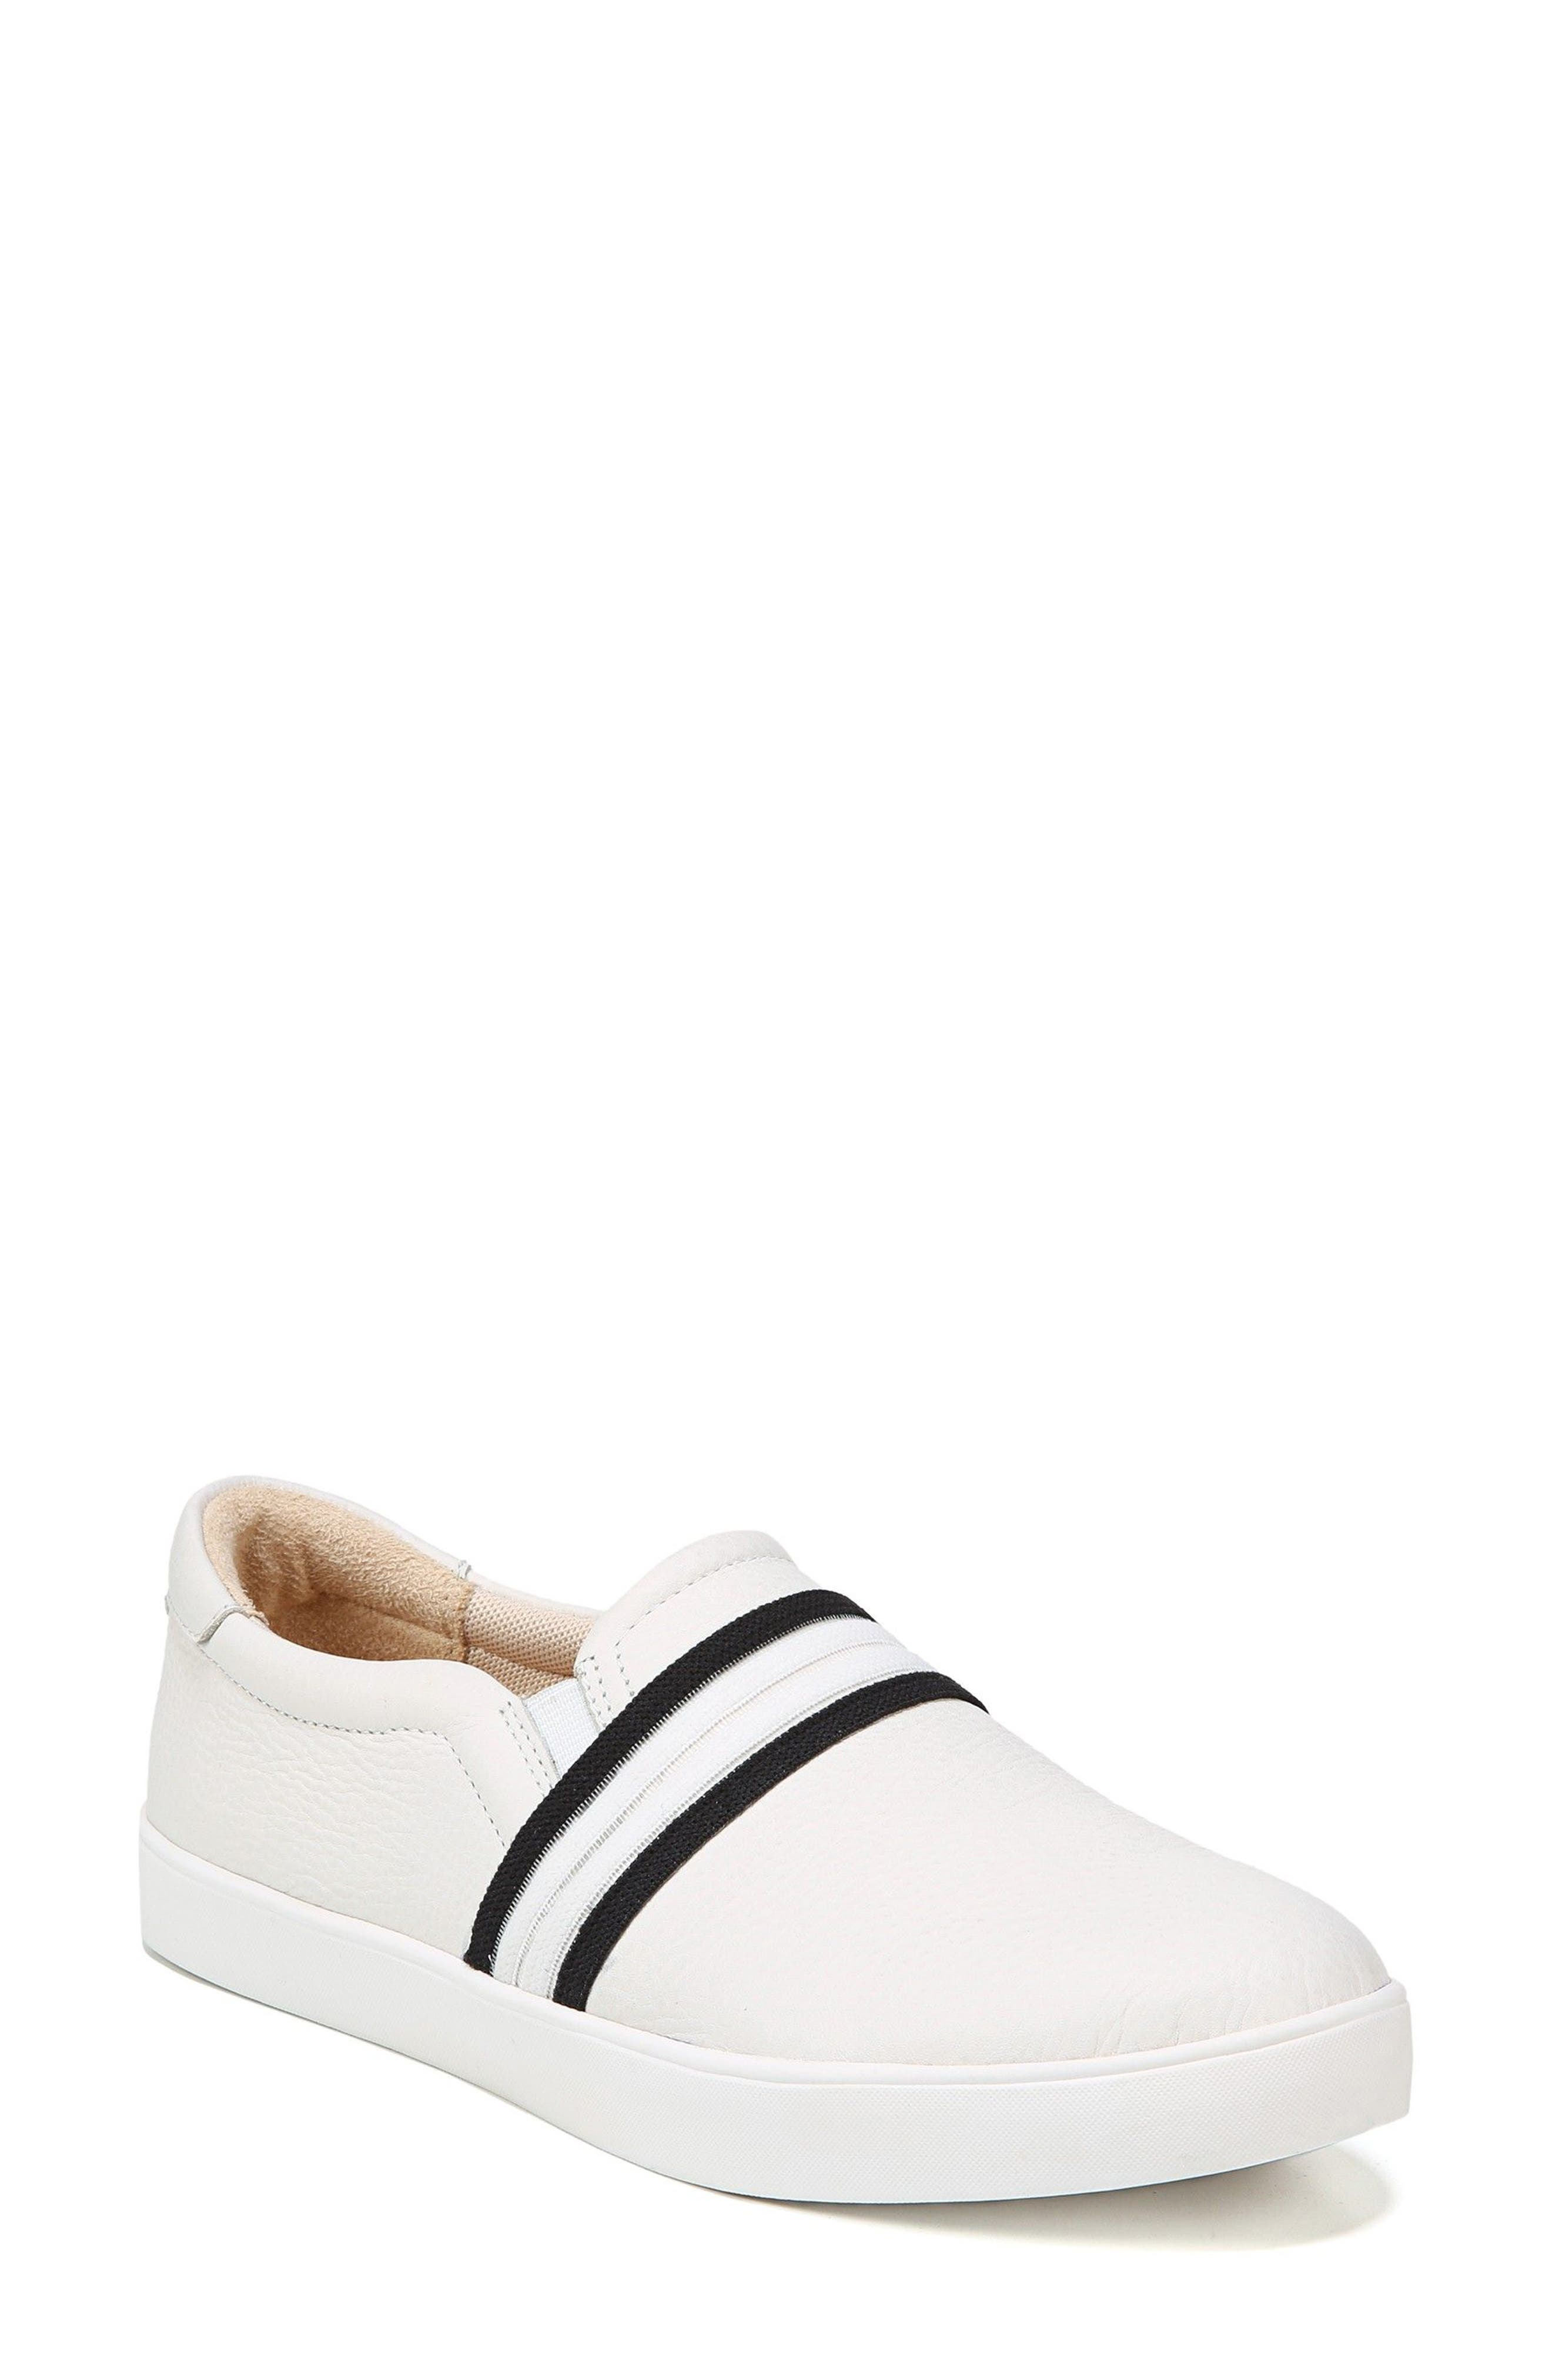 Scout Slip-On Sneaker,                         Main,                         color, White Leather